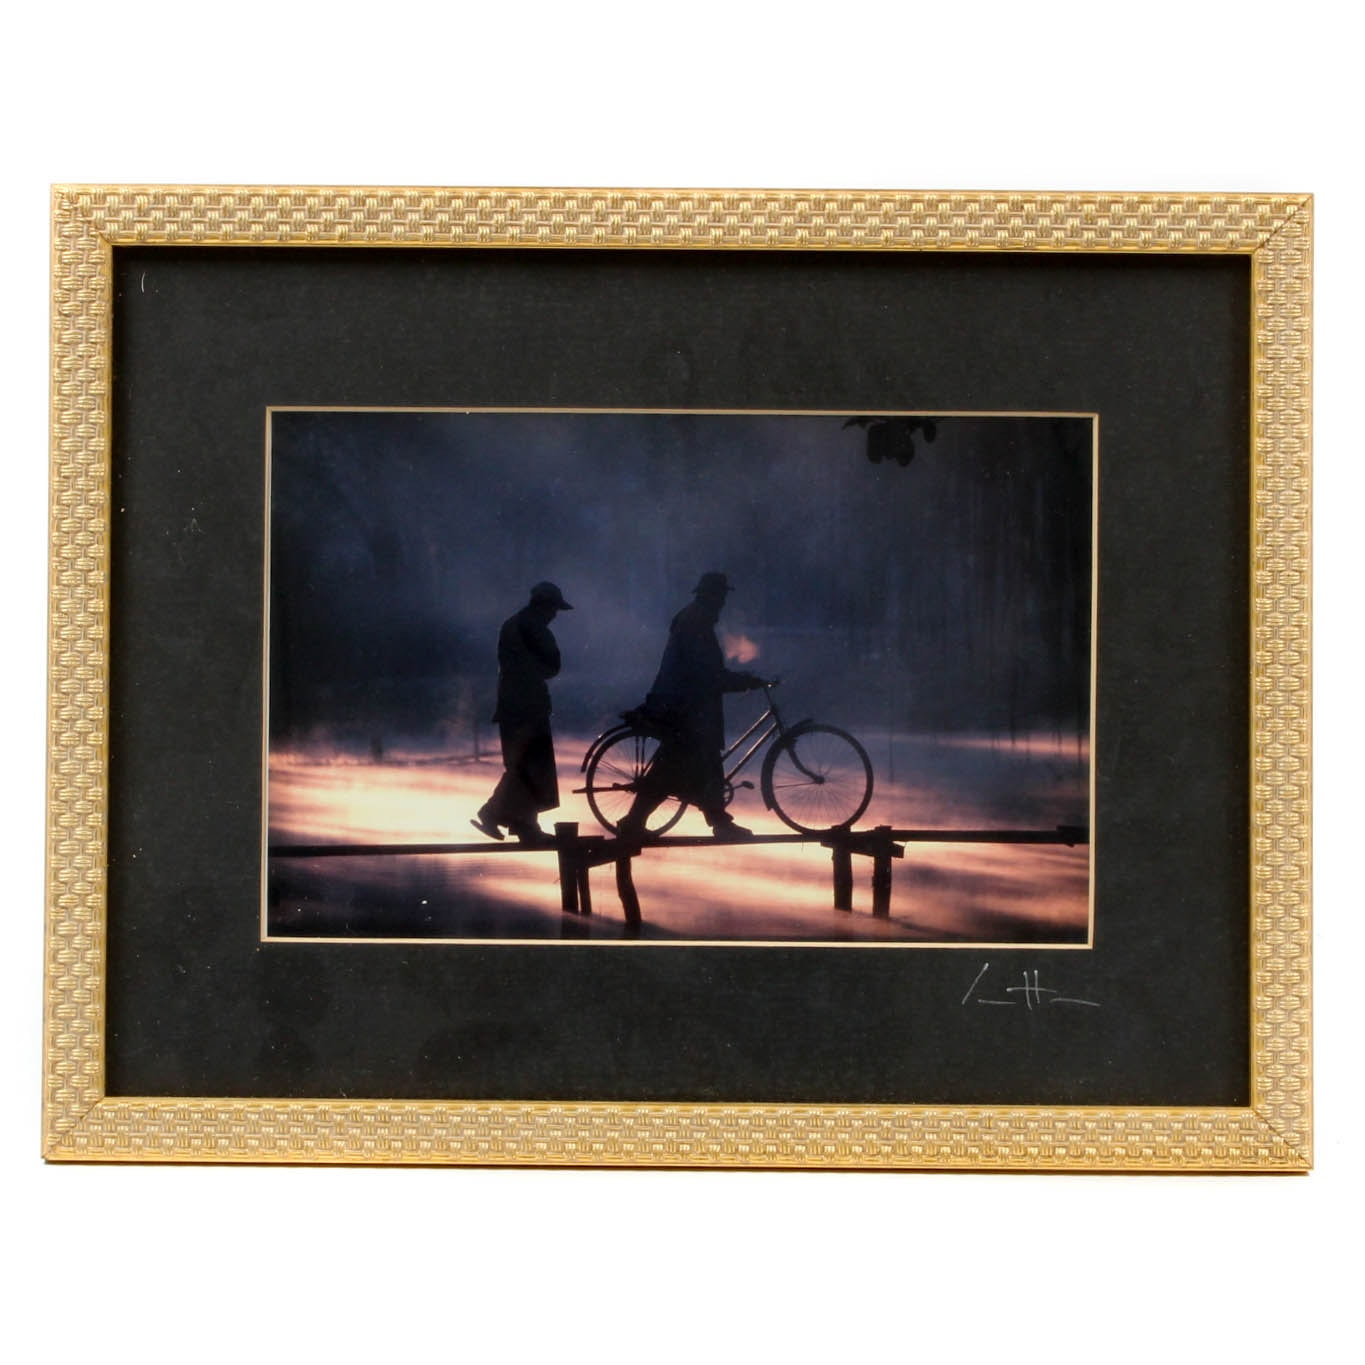 Framed Photograph from Thailand